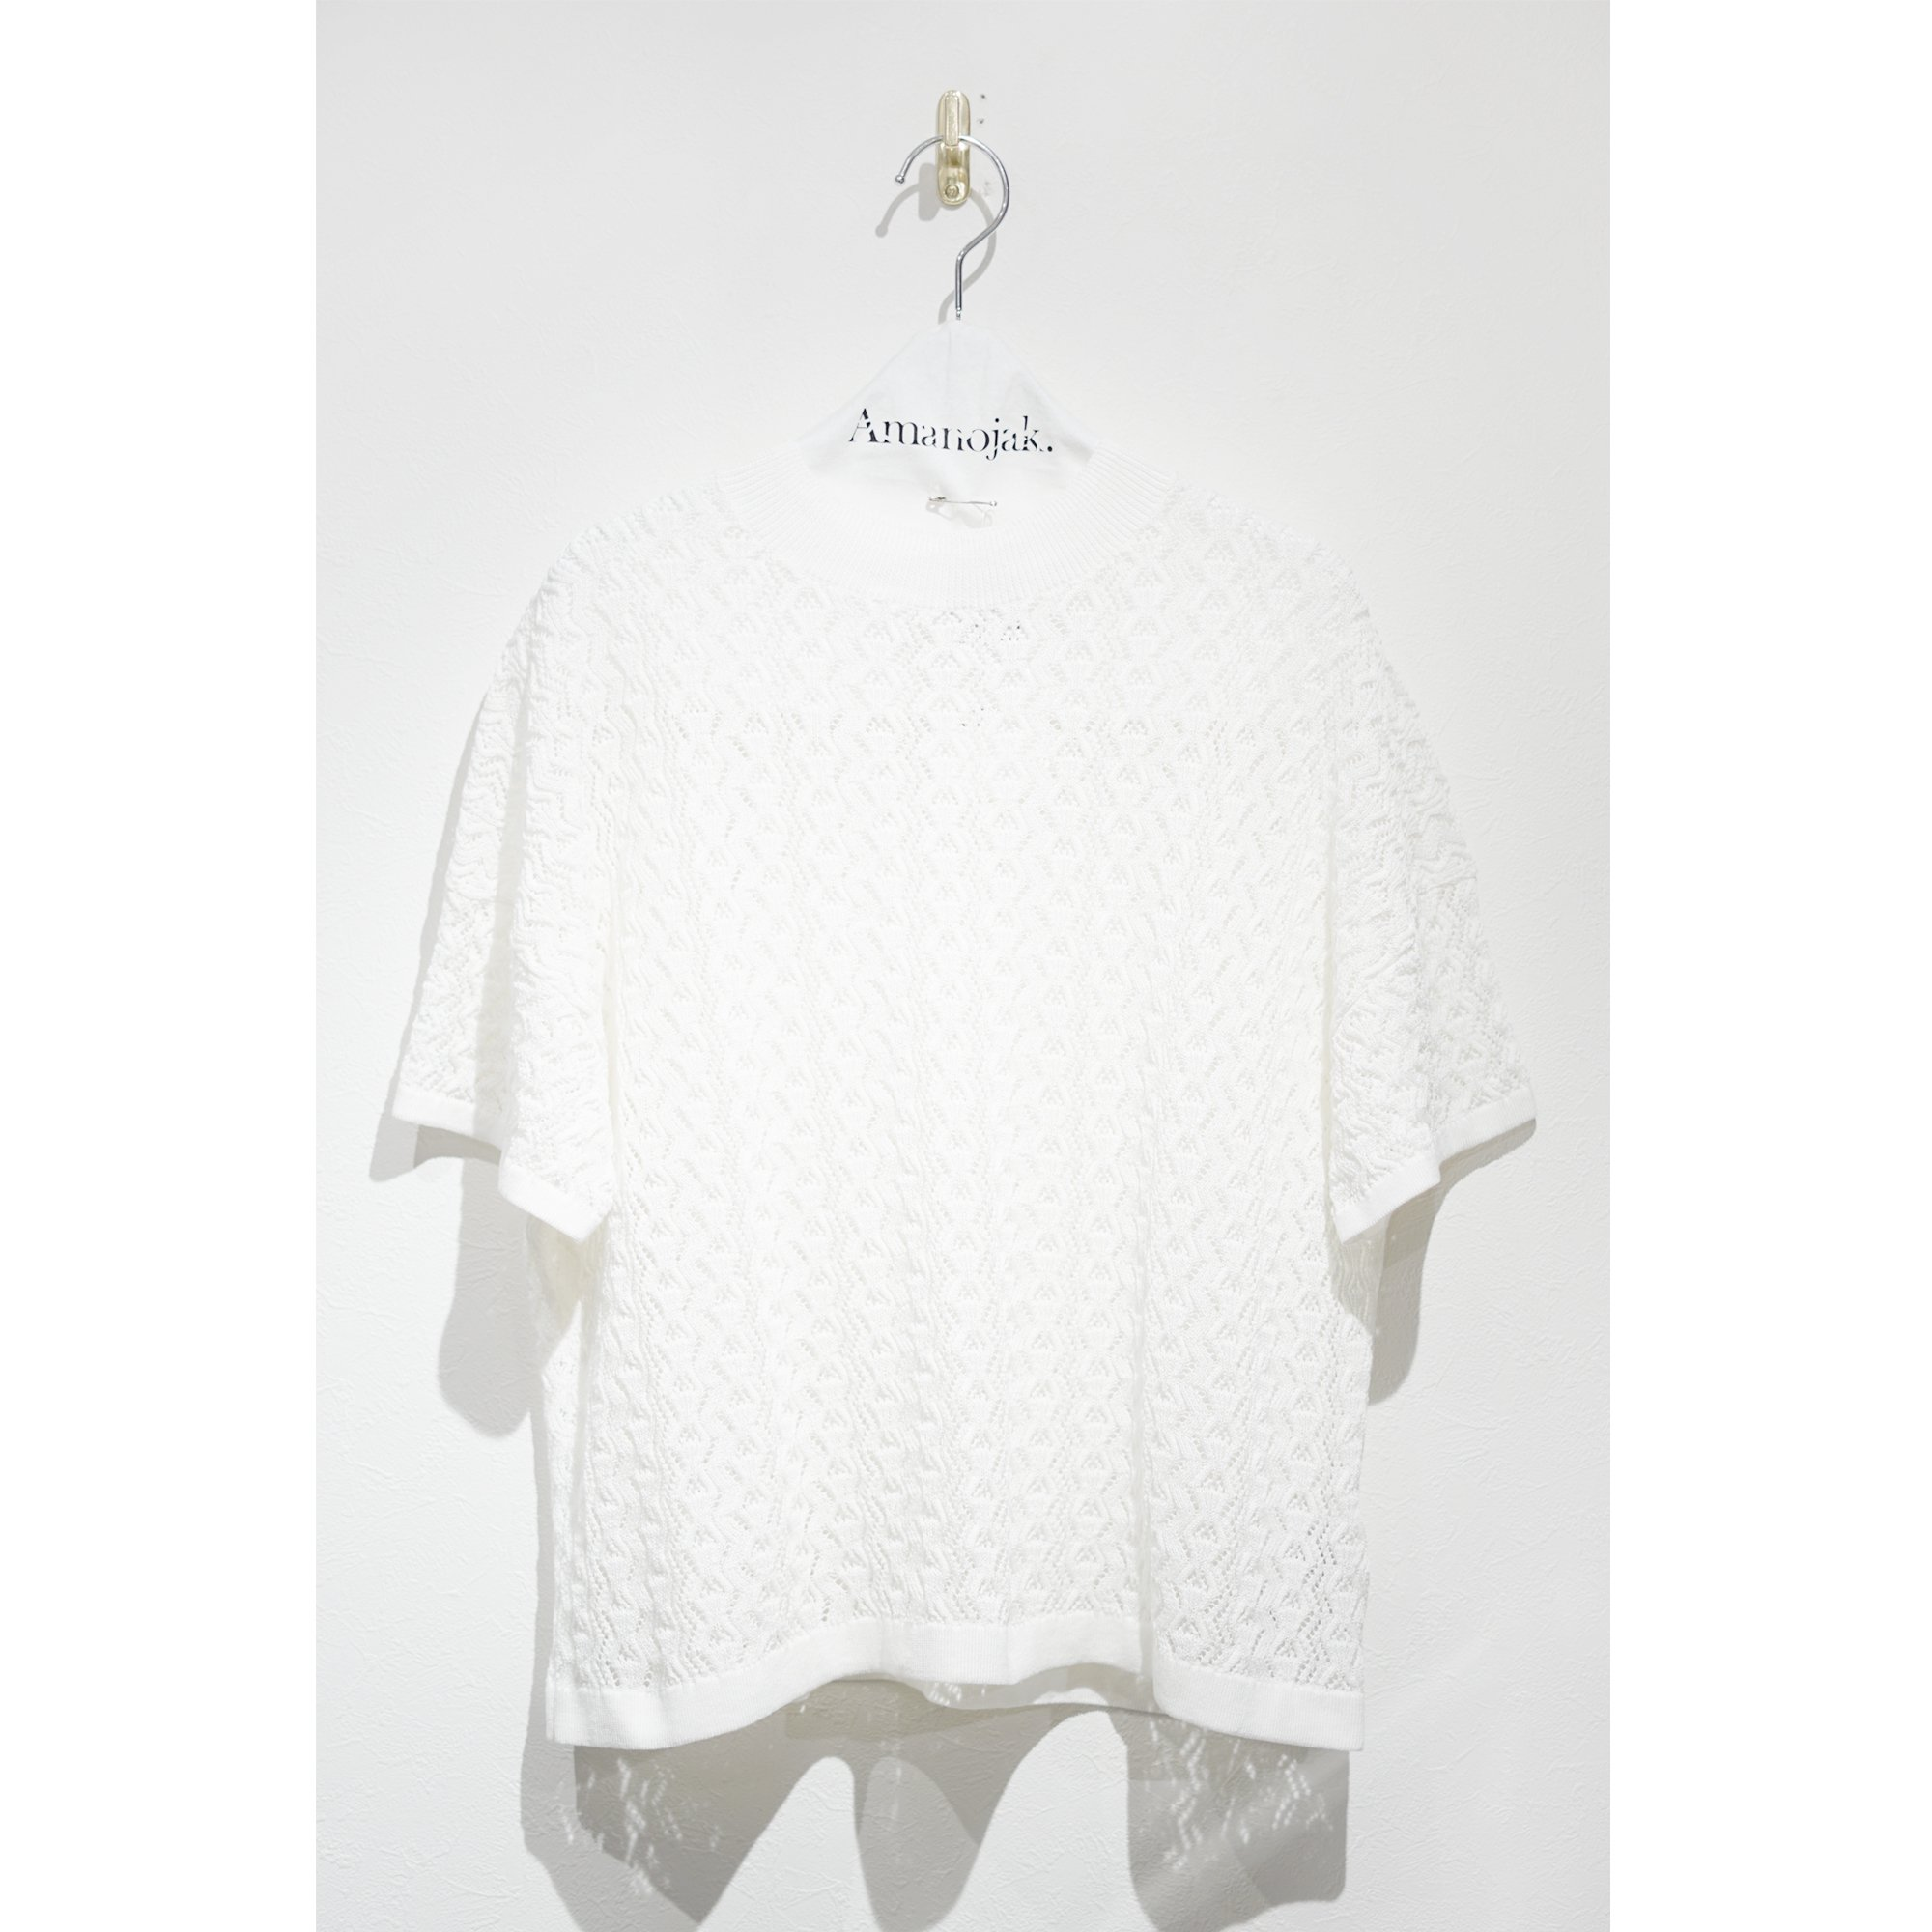 BATONER-SIRKET CORD透かし柄SHORT SLEEVE HI NECK WHITE